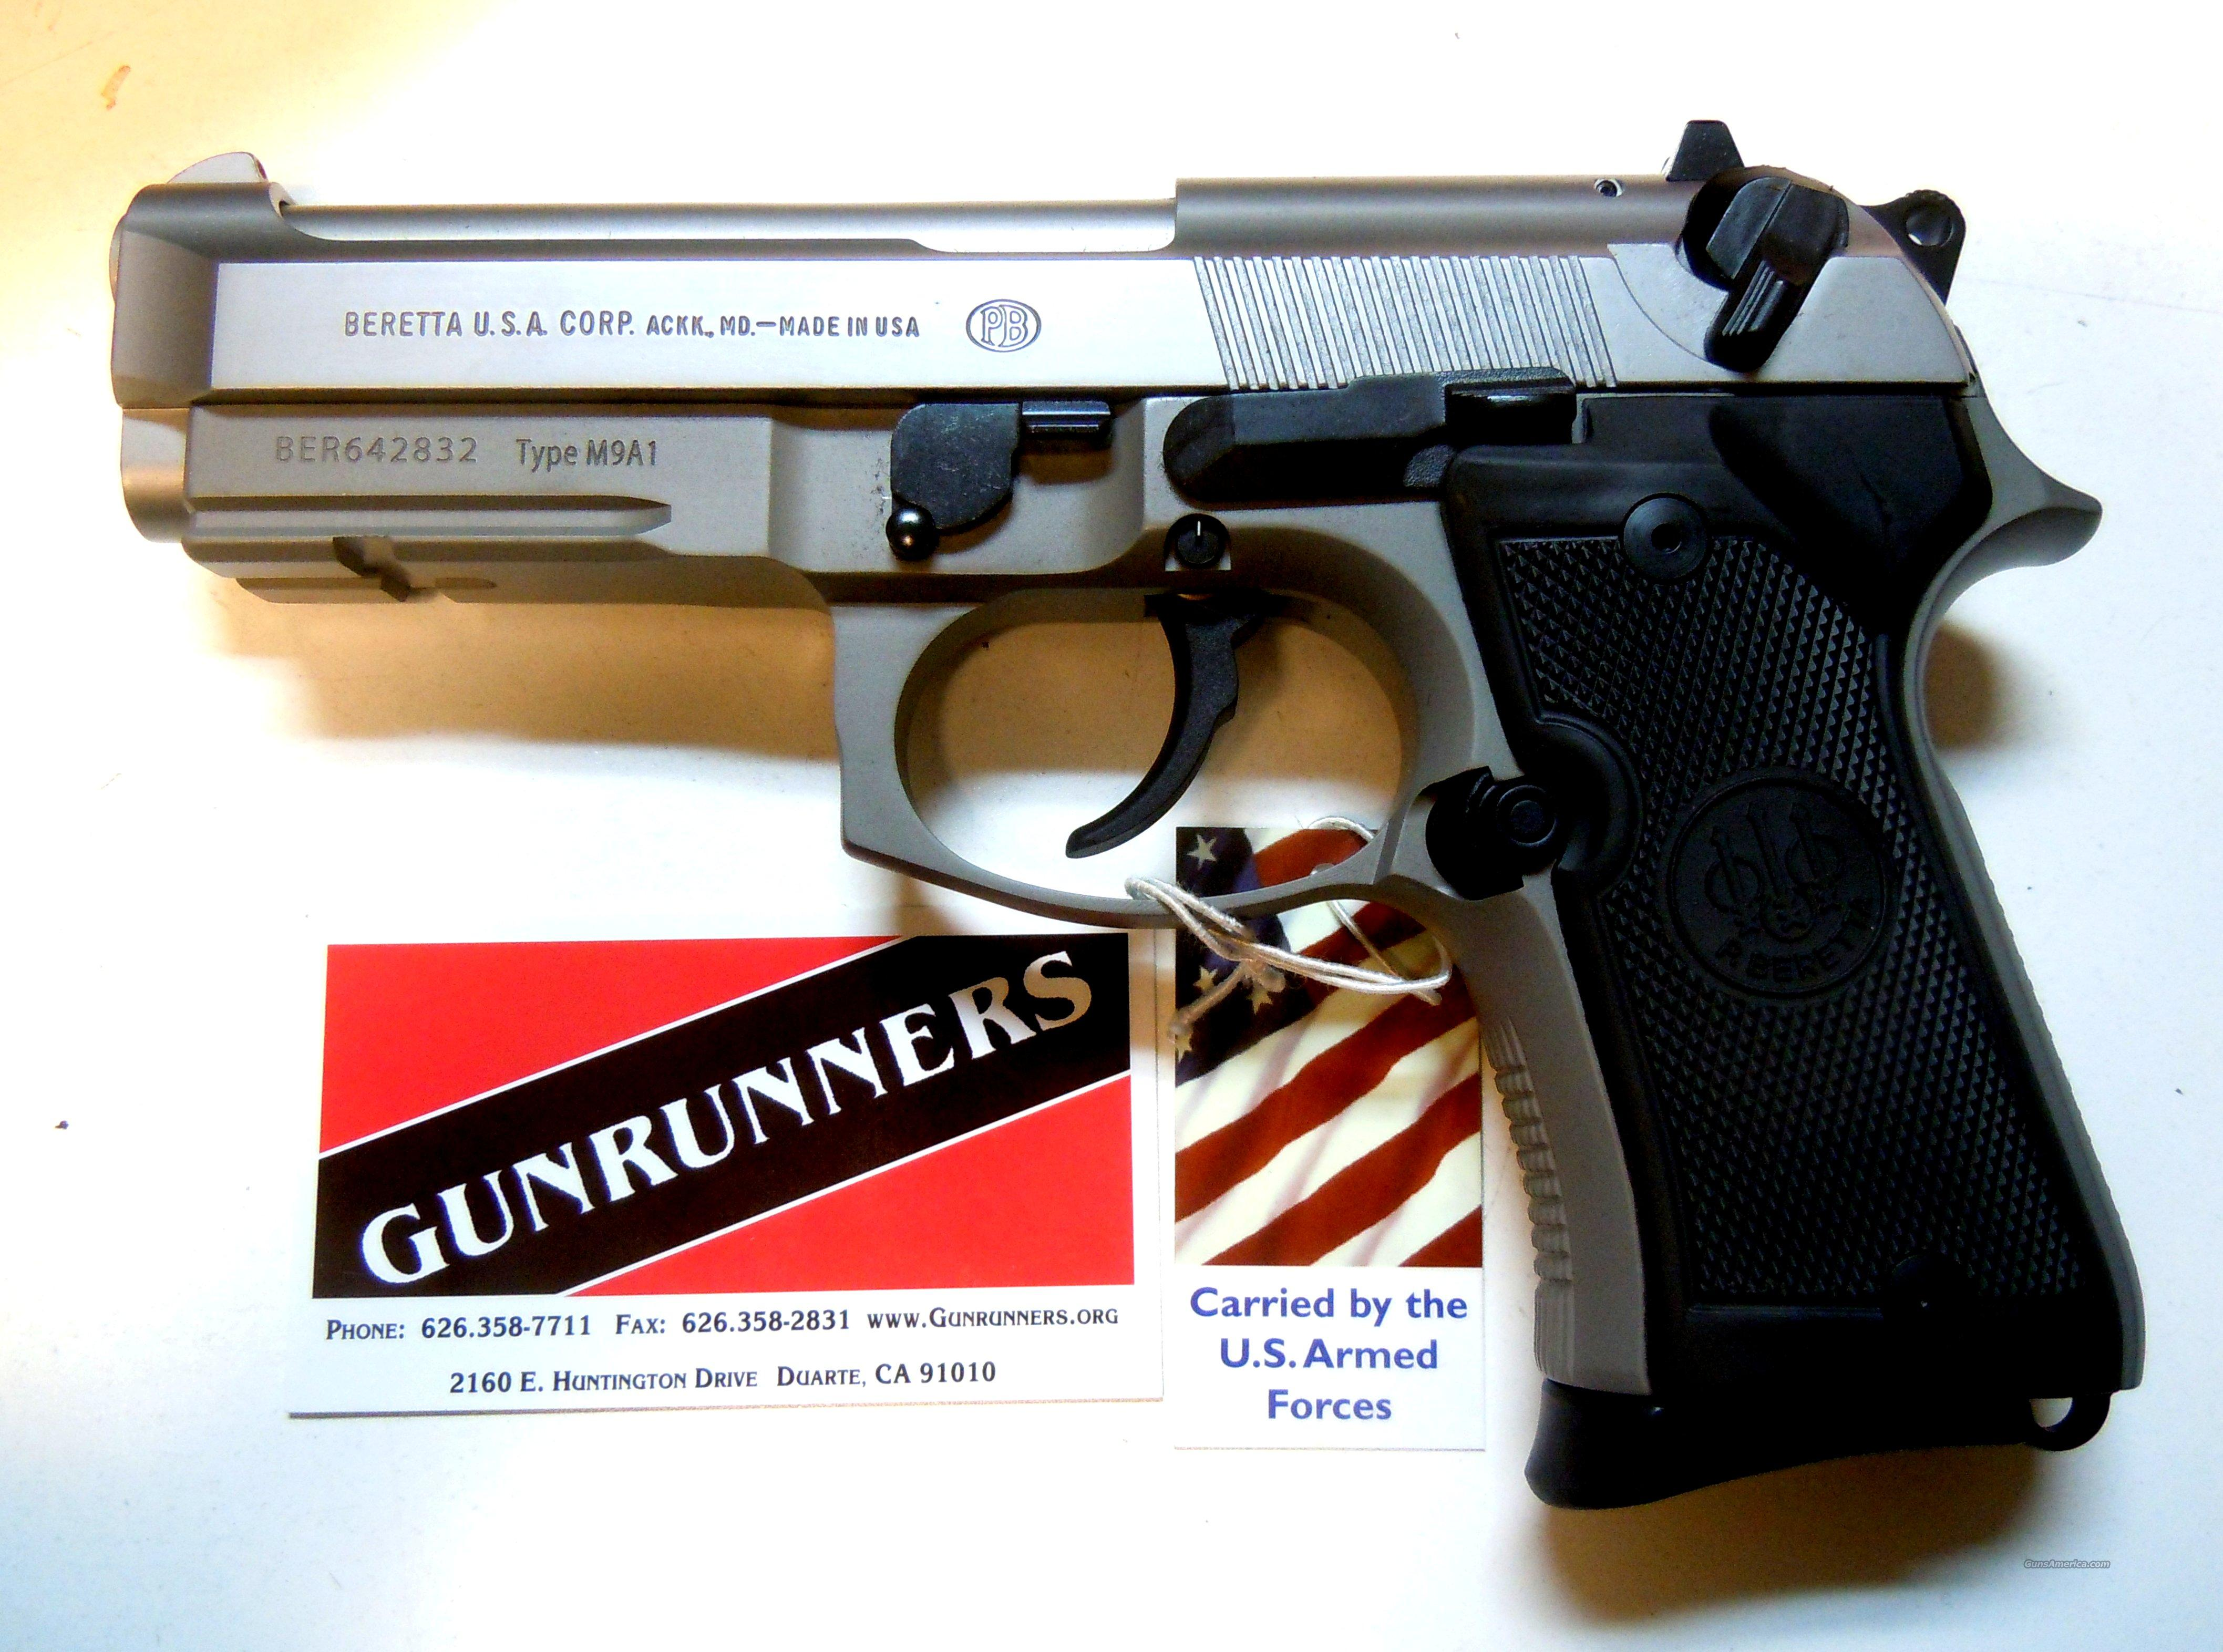 Beretta 92FS Compact L, Type M9A1 w/Rail,  INOX,  9mm,  NEW GUN for 2013!  Guns > Pistols > Beretta Pistols > Model 92 Series